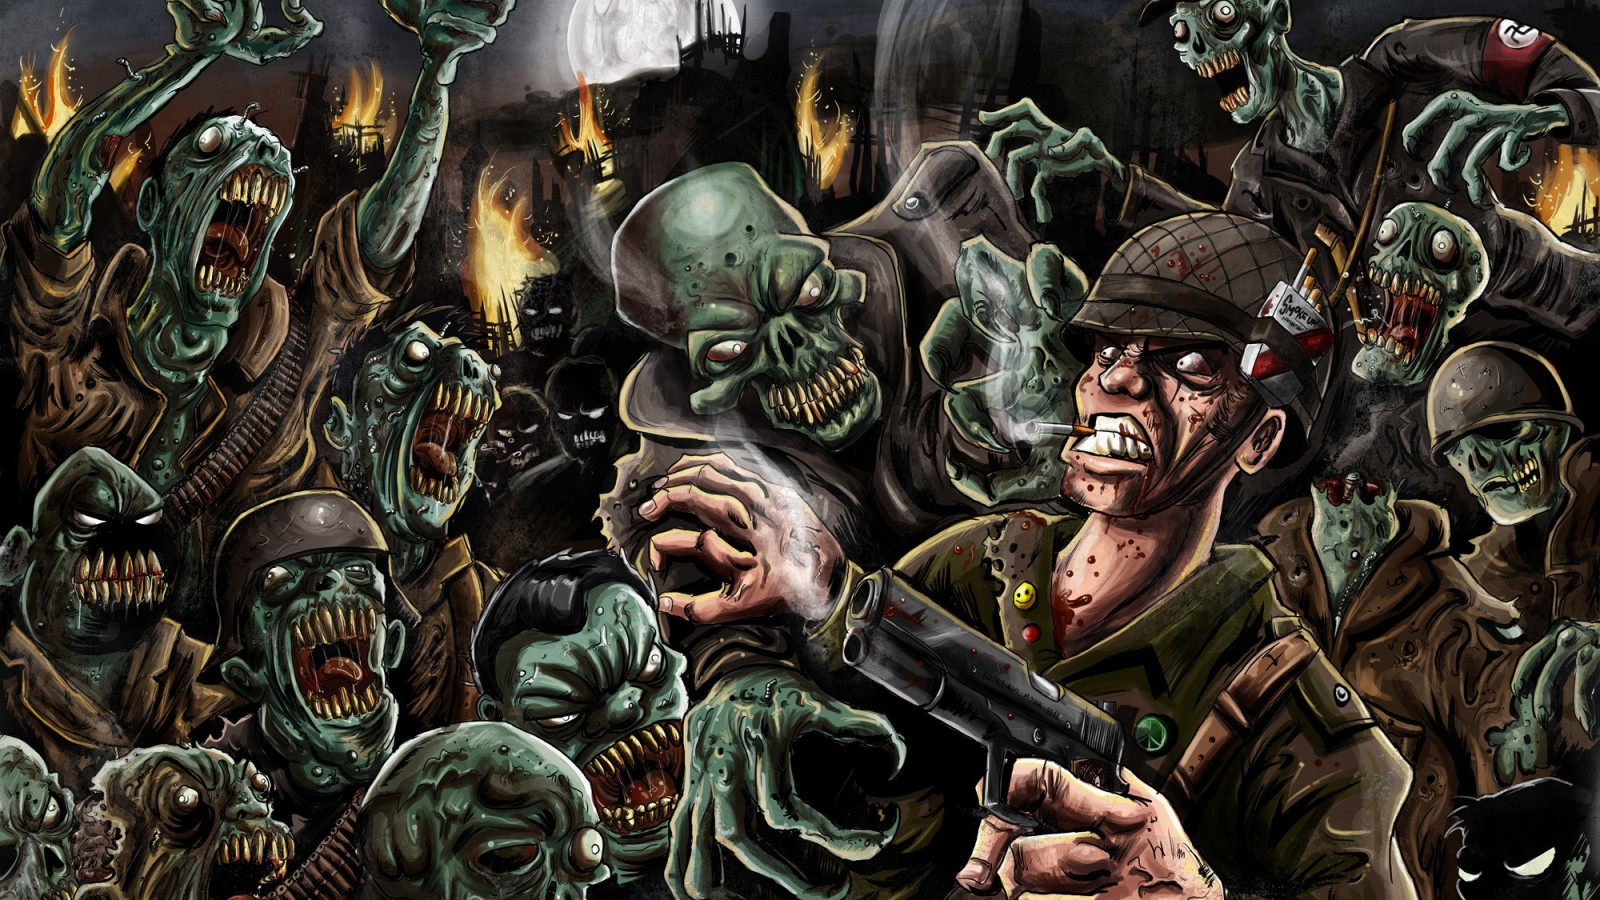 Free Download Call Of Duty World At War Zombies Wallpaper